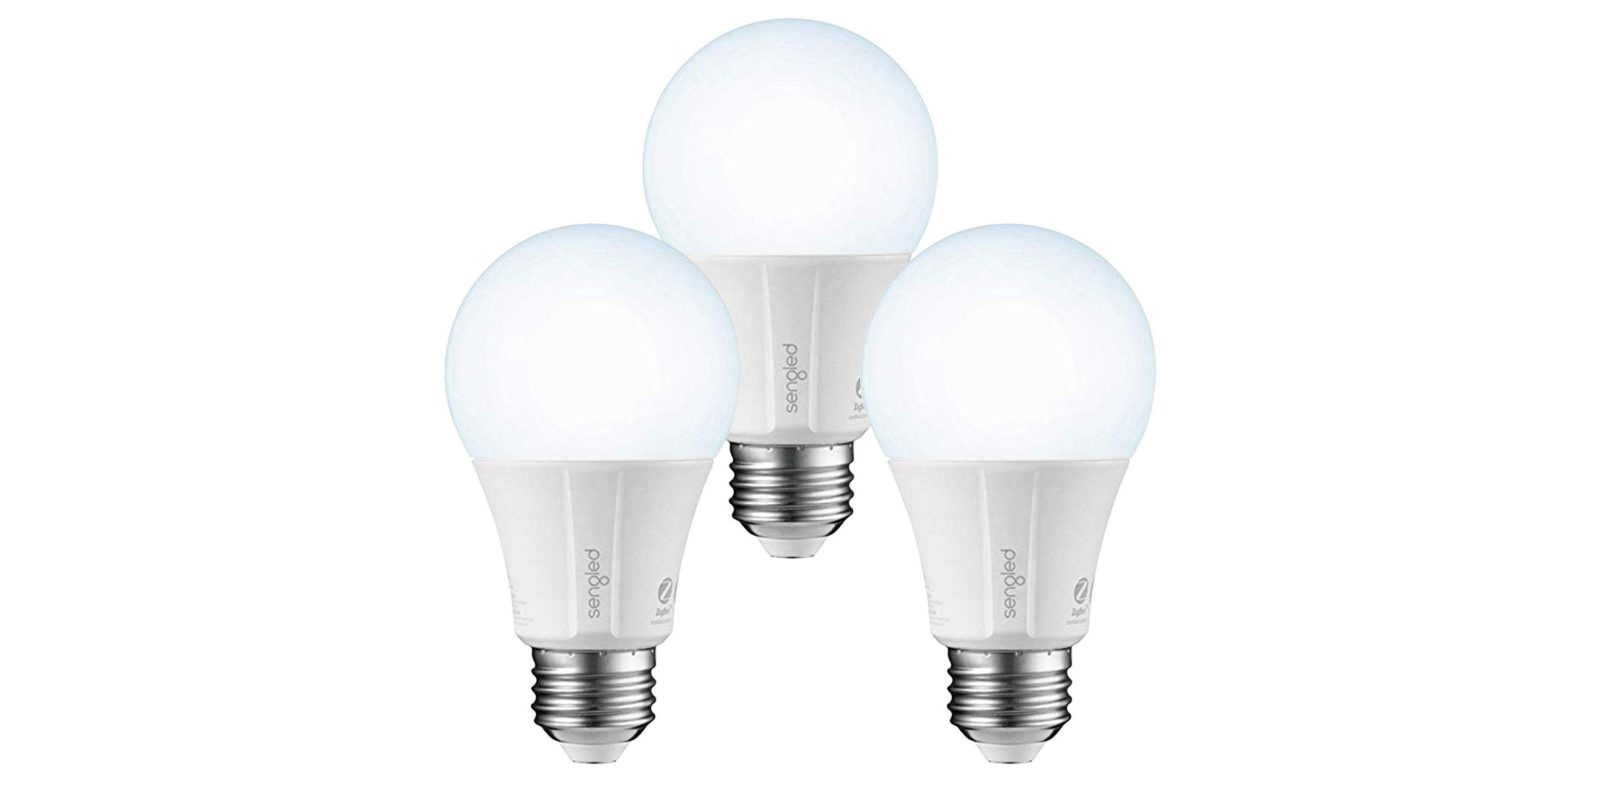 Grab a three-pack of Sengled Dimmable Smart LED Light Bulbs for $23, more